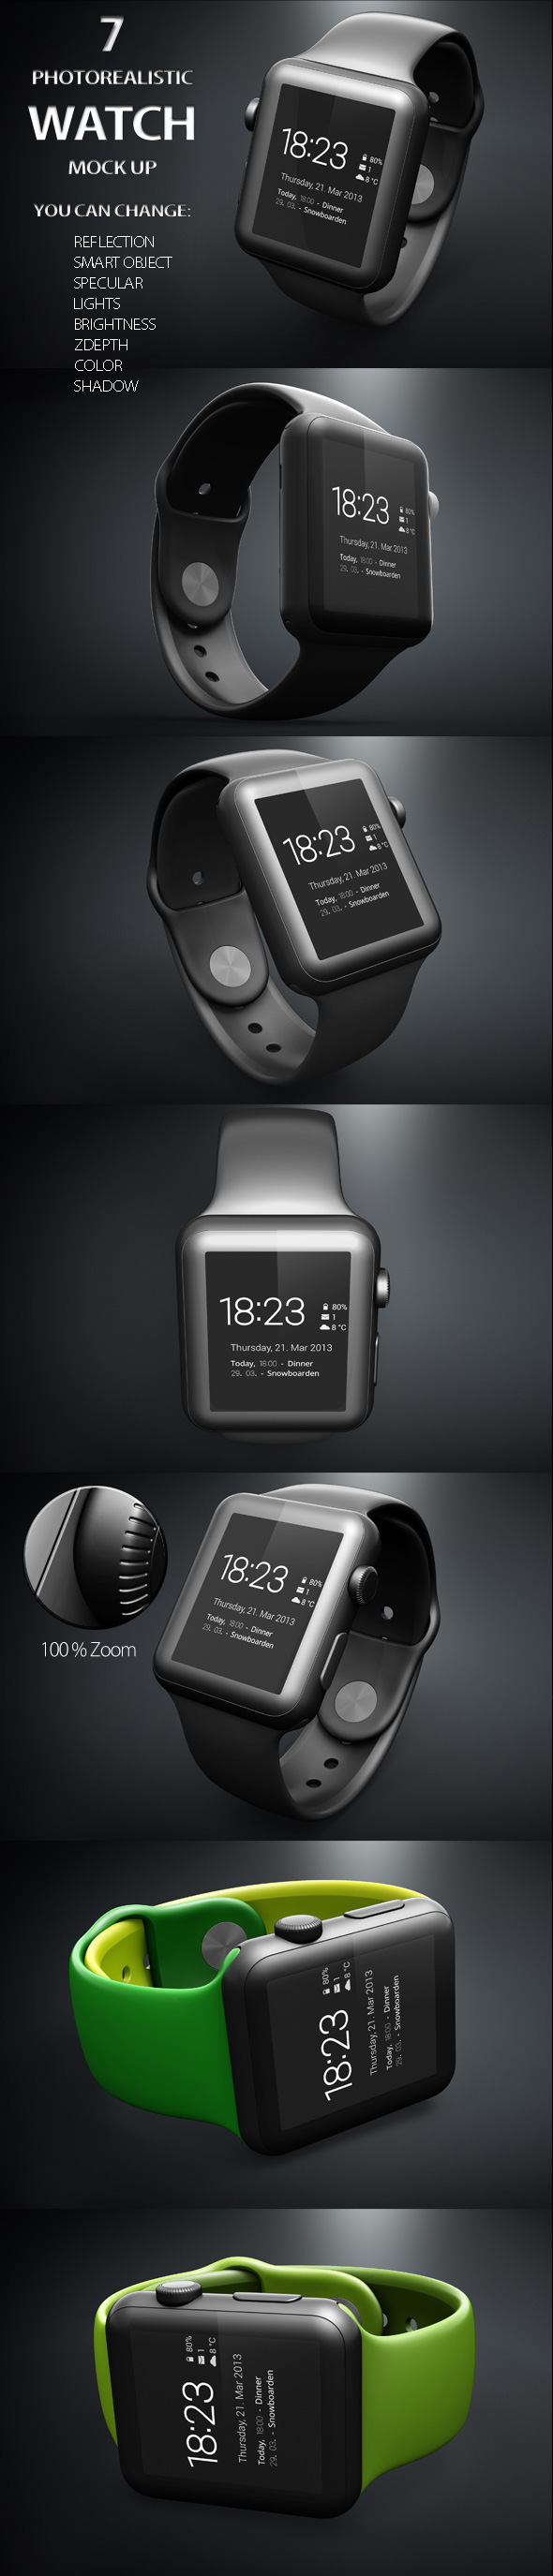 iWatch-Apple-V.2